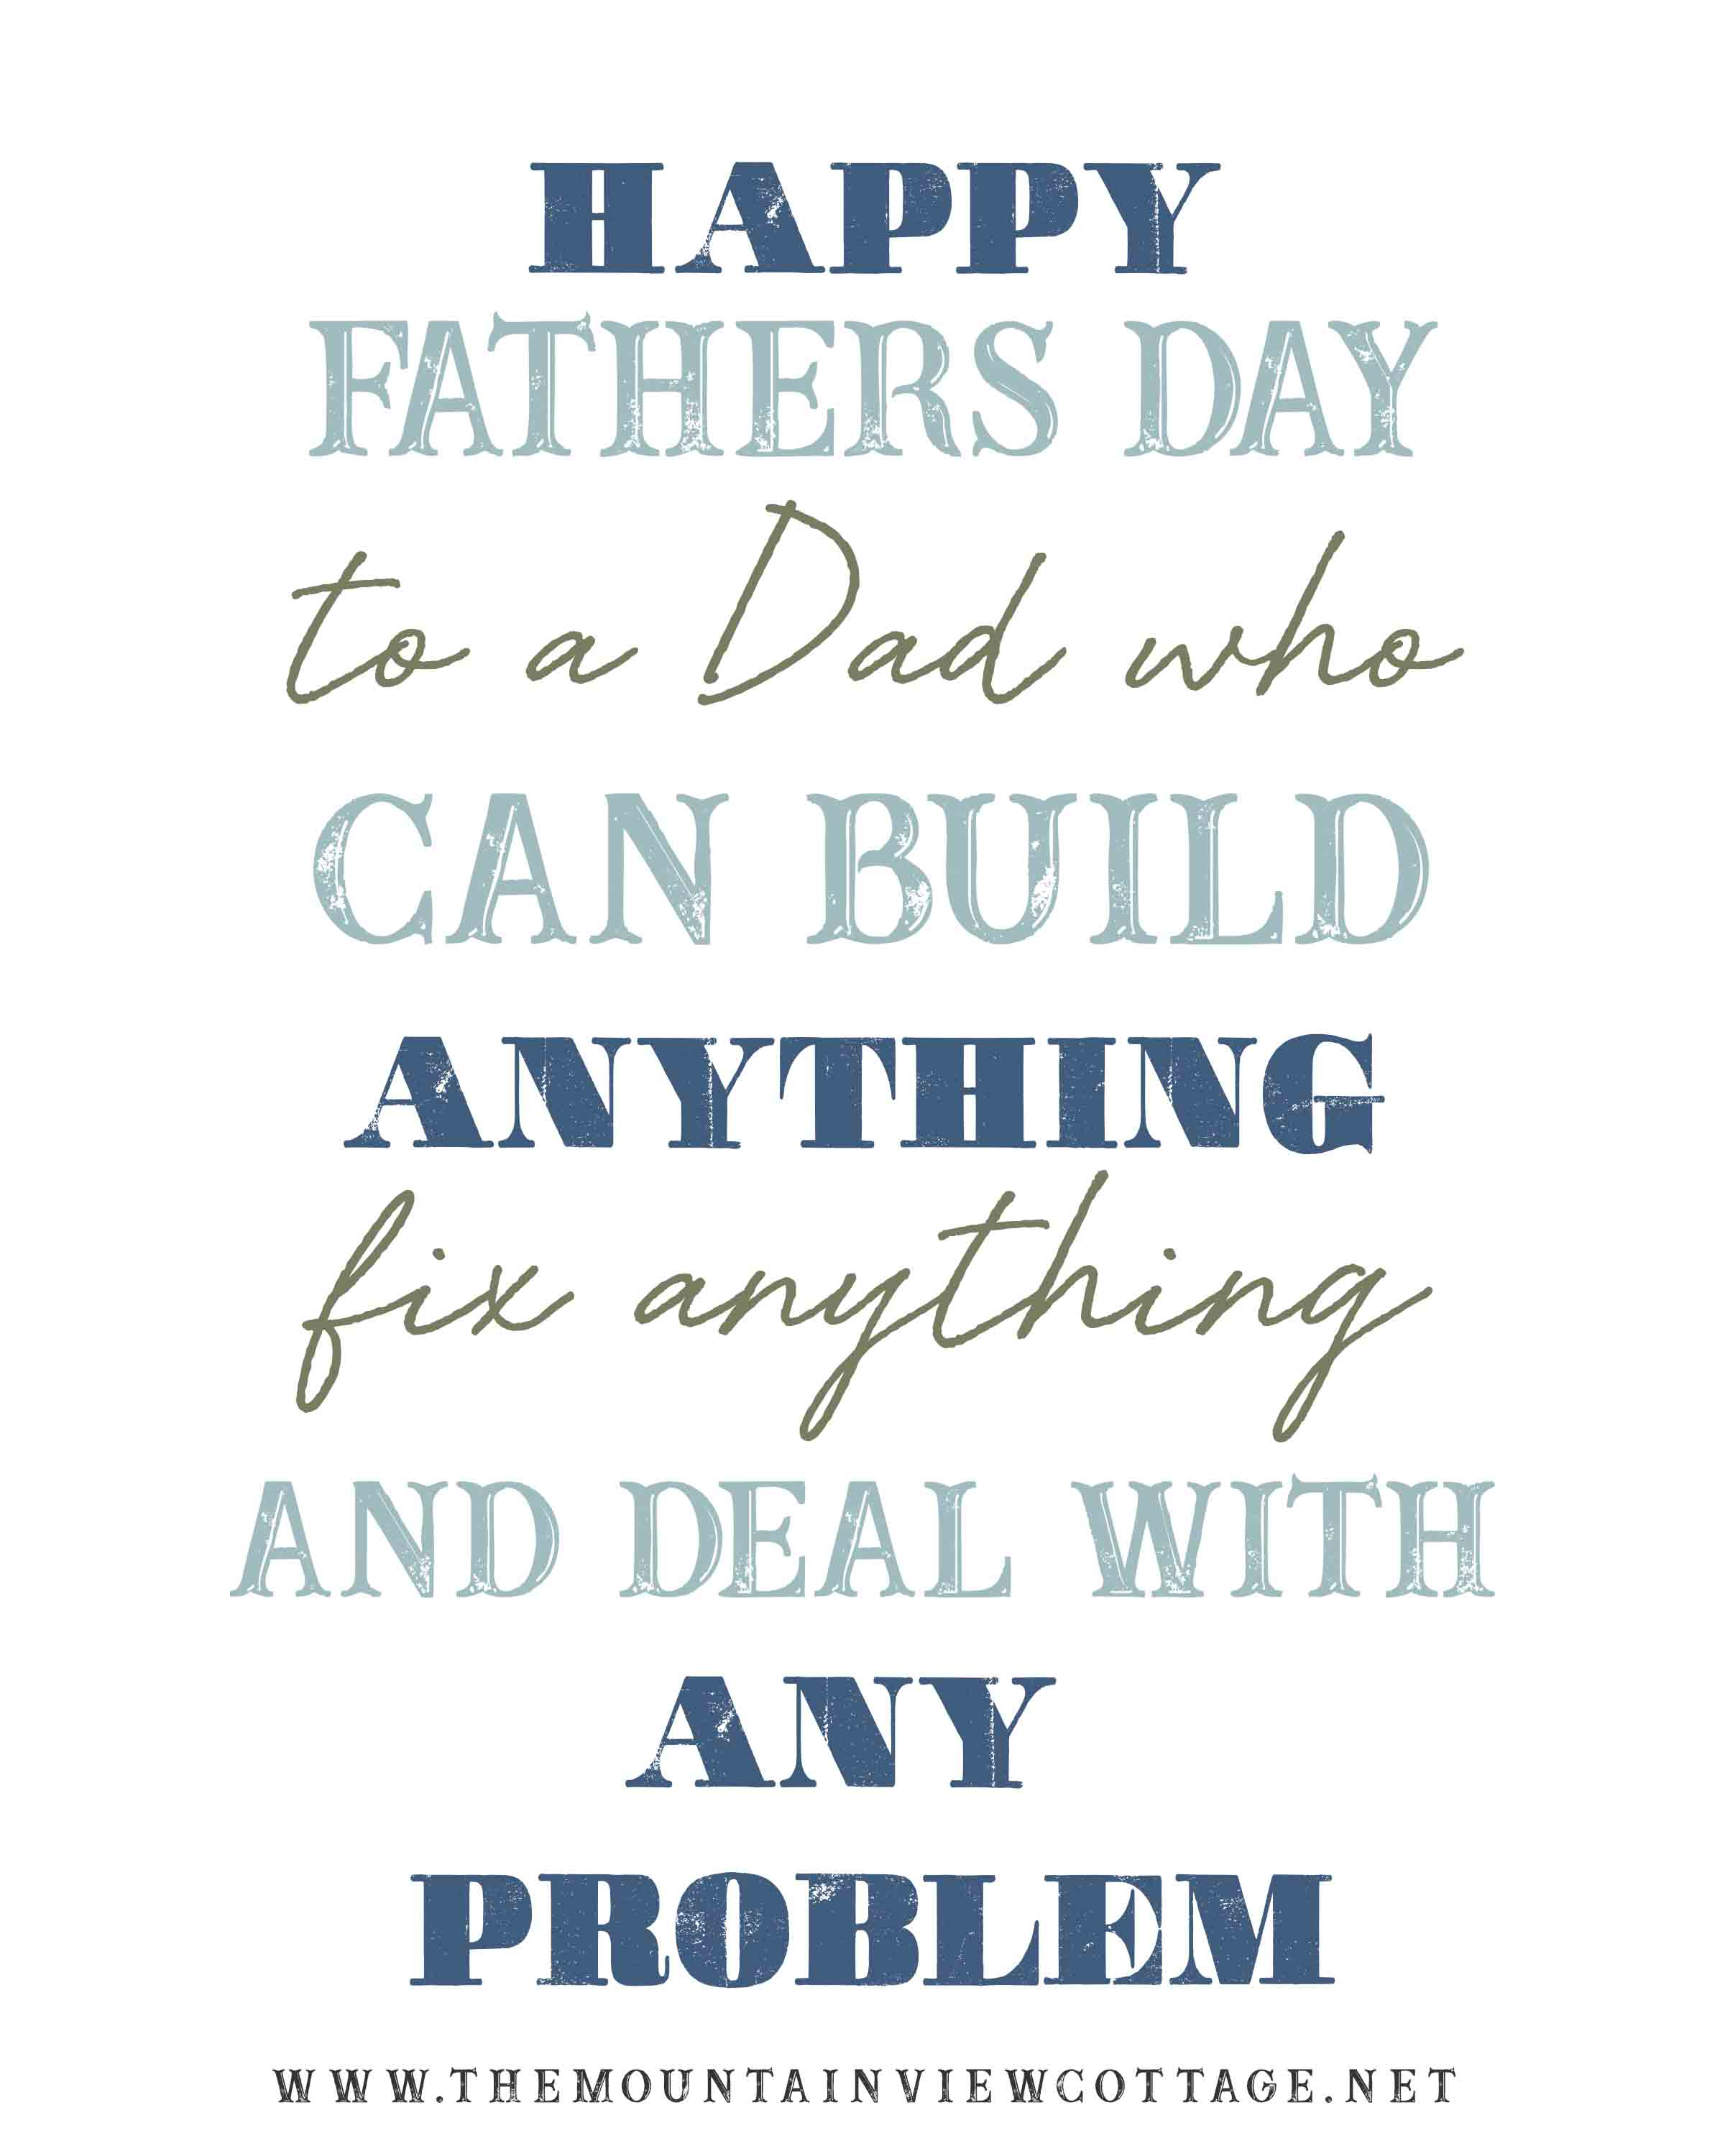 Father's Day quotes-Dad quotes-happy fathers day to a dad who can build anything fix anything and deal with any problem